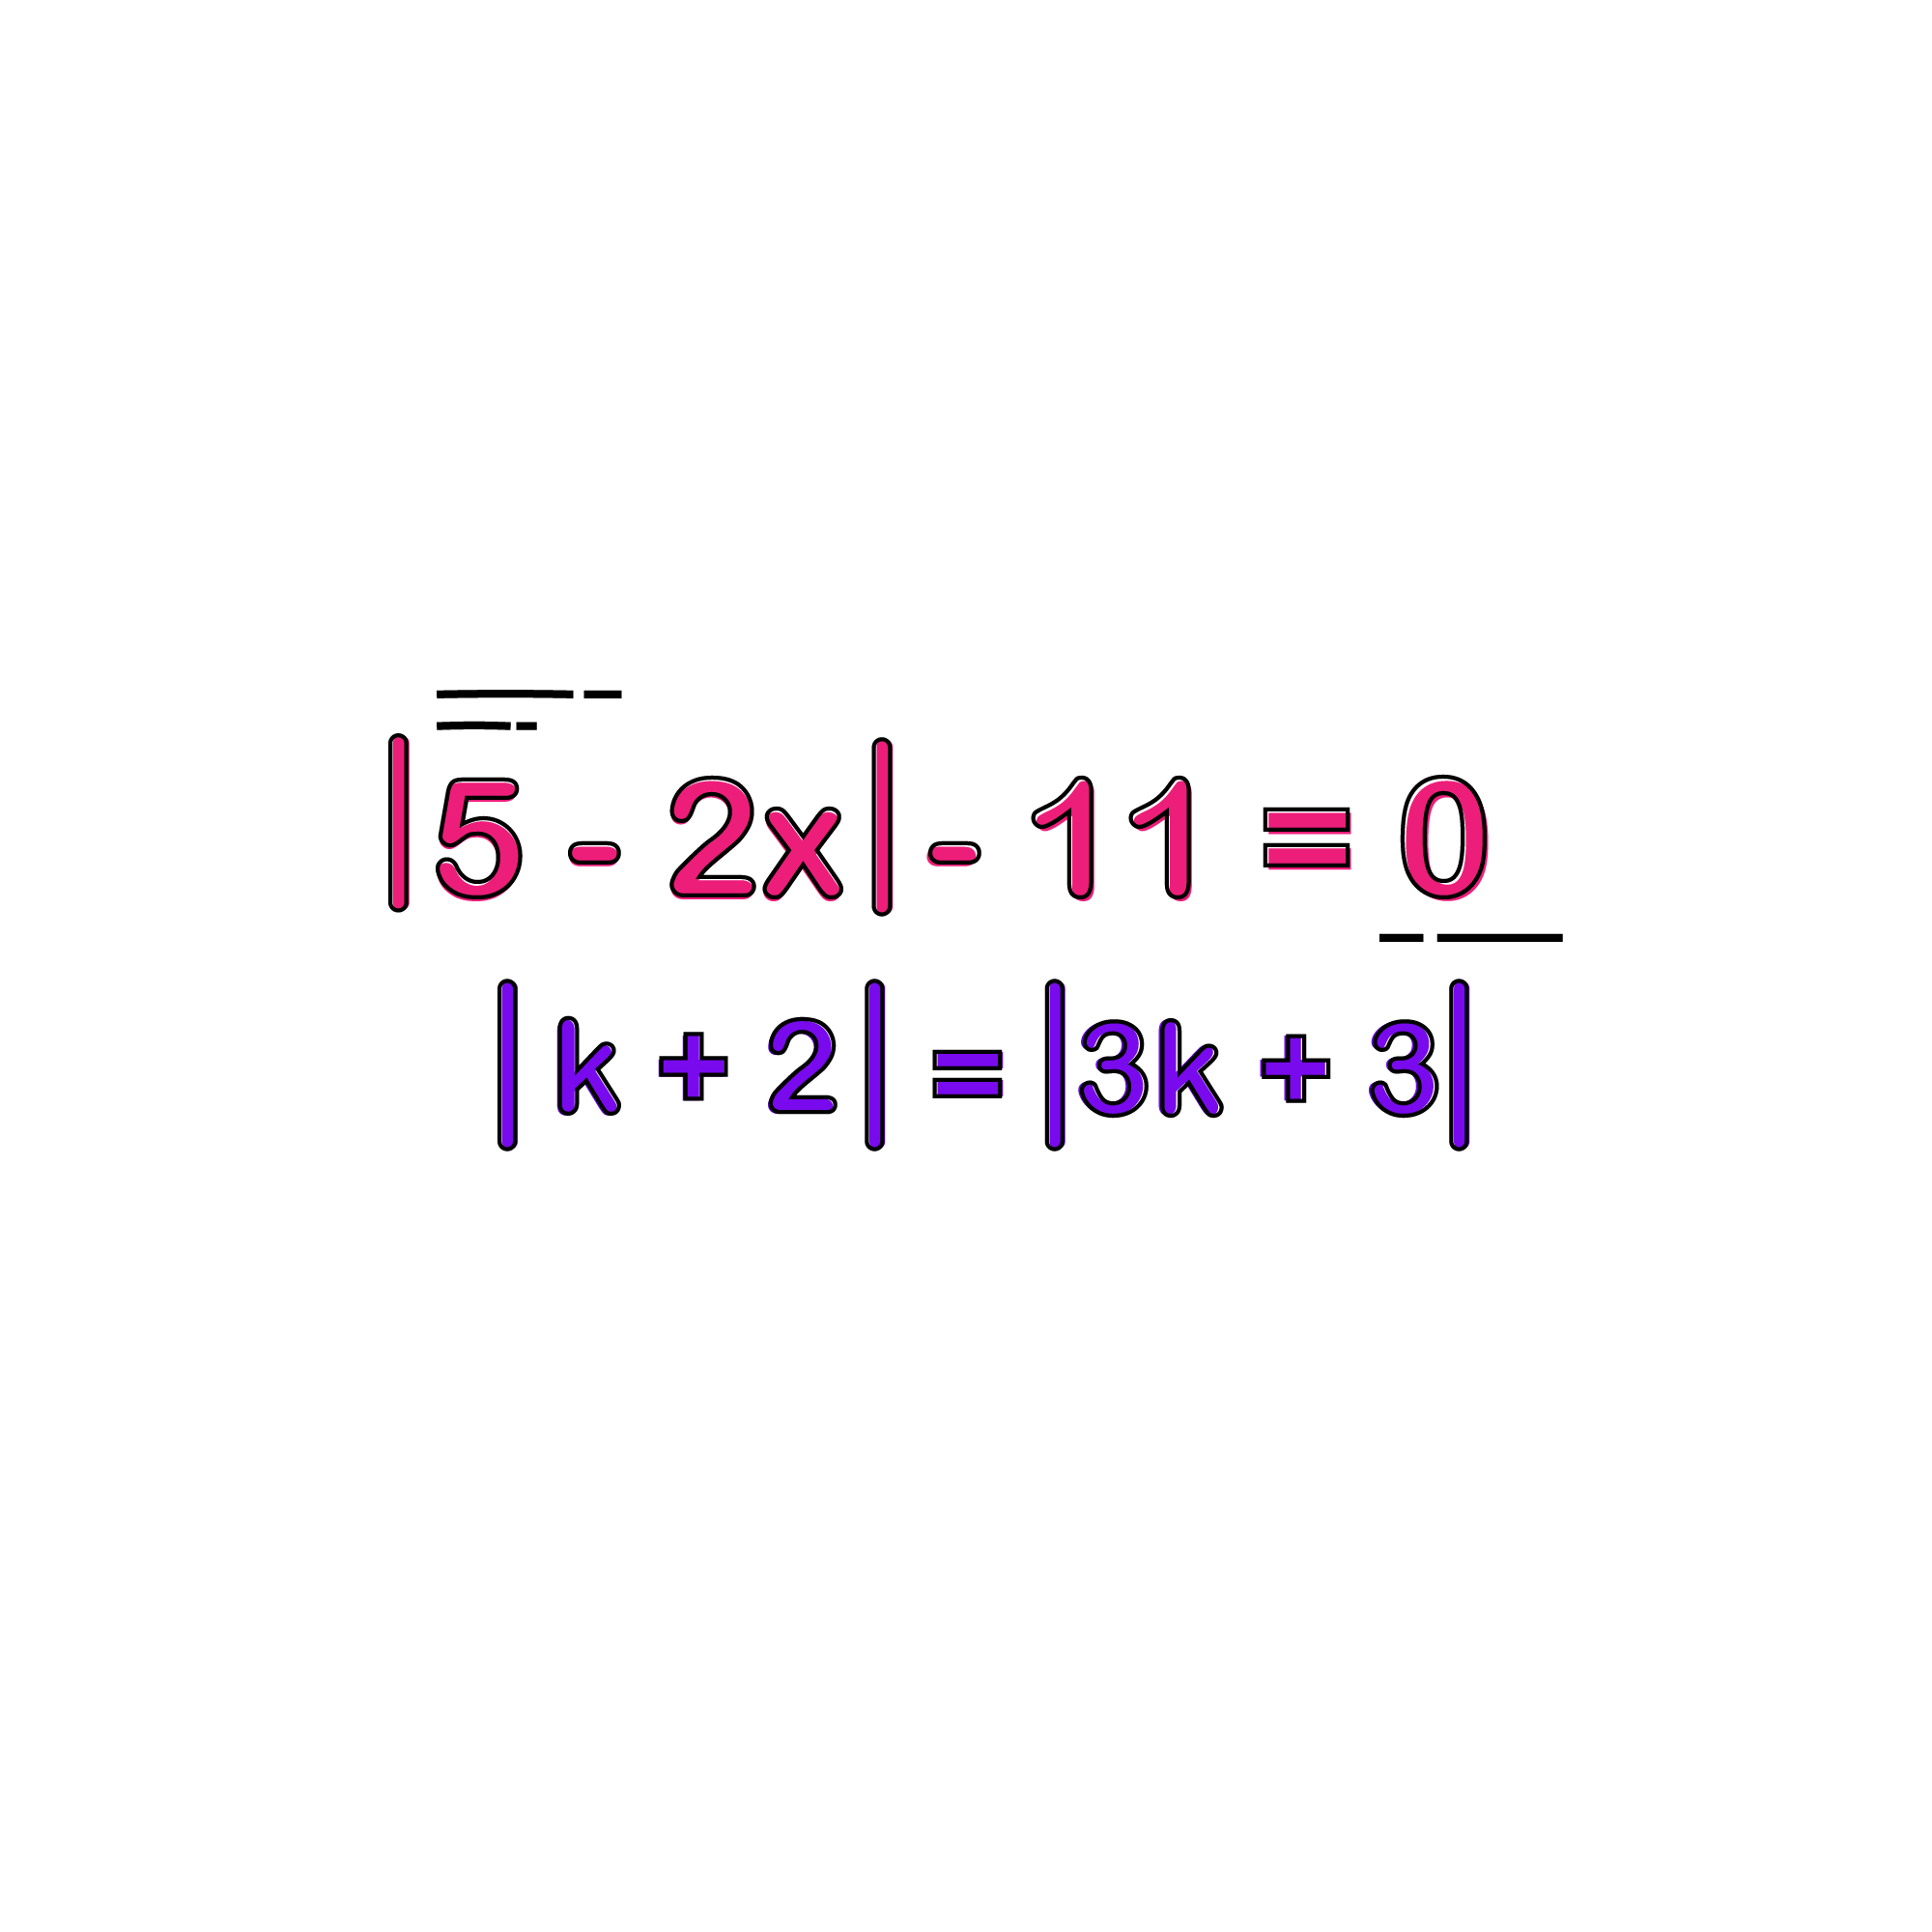 The Absolute Value of a number is its distance from zero (on the number line). Thus, an absolute value is always positive. We indicate absolute value by putting two bars around the number.